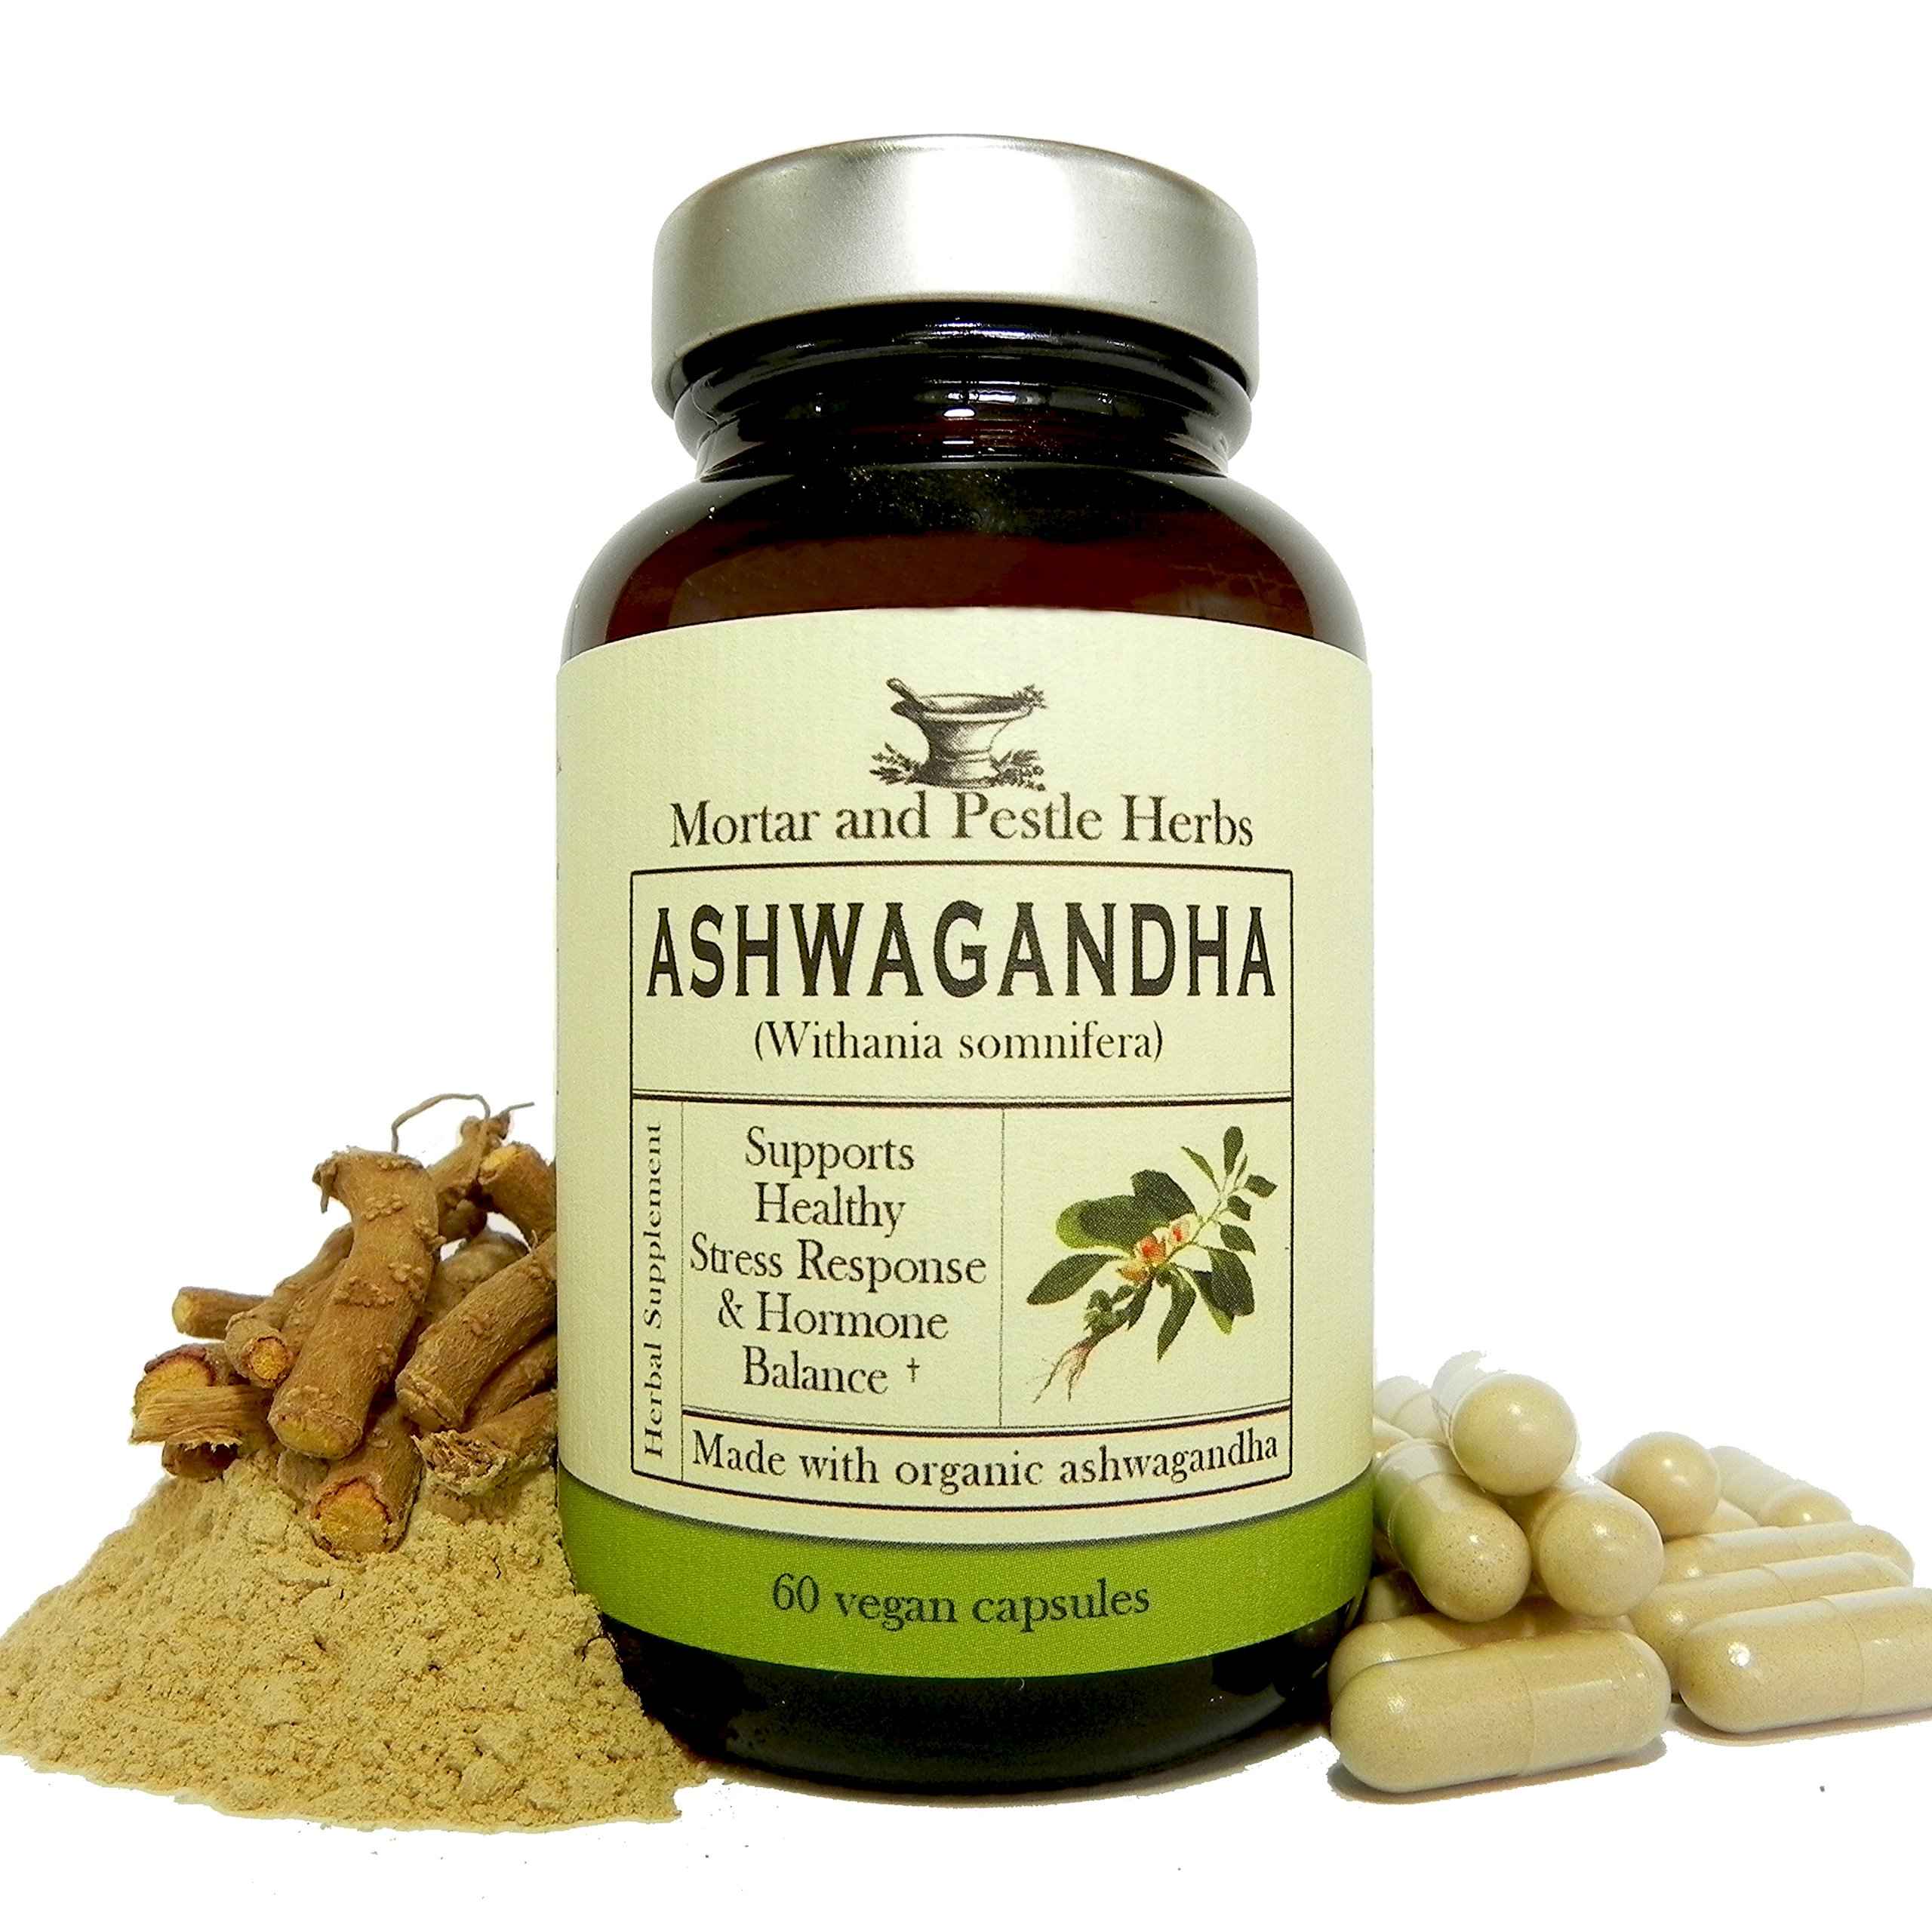 Ashwagandha Herbal Supplement – Extra Strength Ashwagandha Extract, Pure Organic Ashwagandha Root Powder with BioPerine Black Pepper - 60 Vegan Capsules - Made in USA